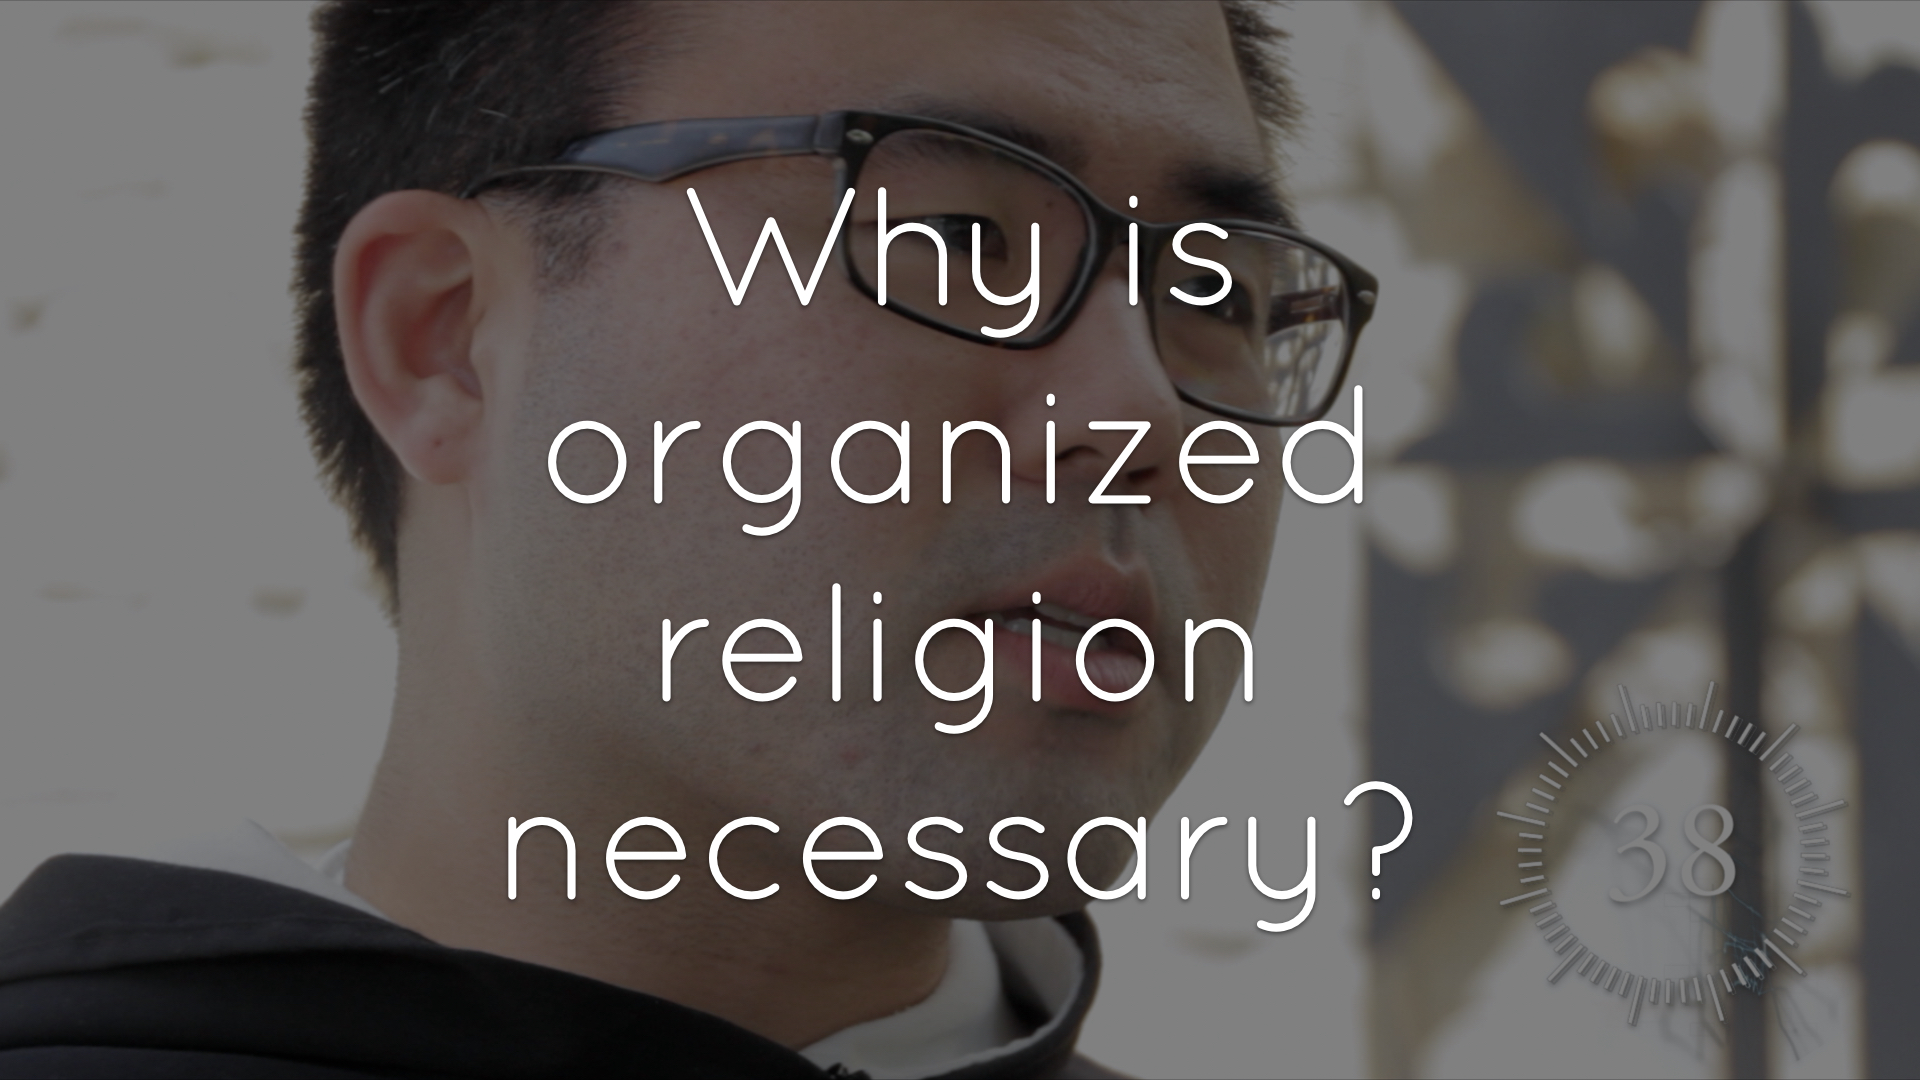 Why is organized religion necessary?